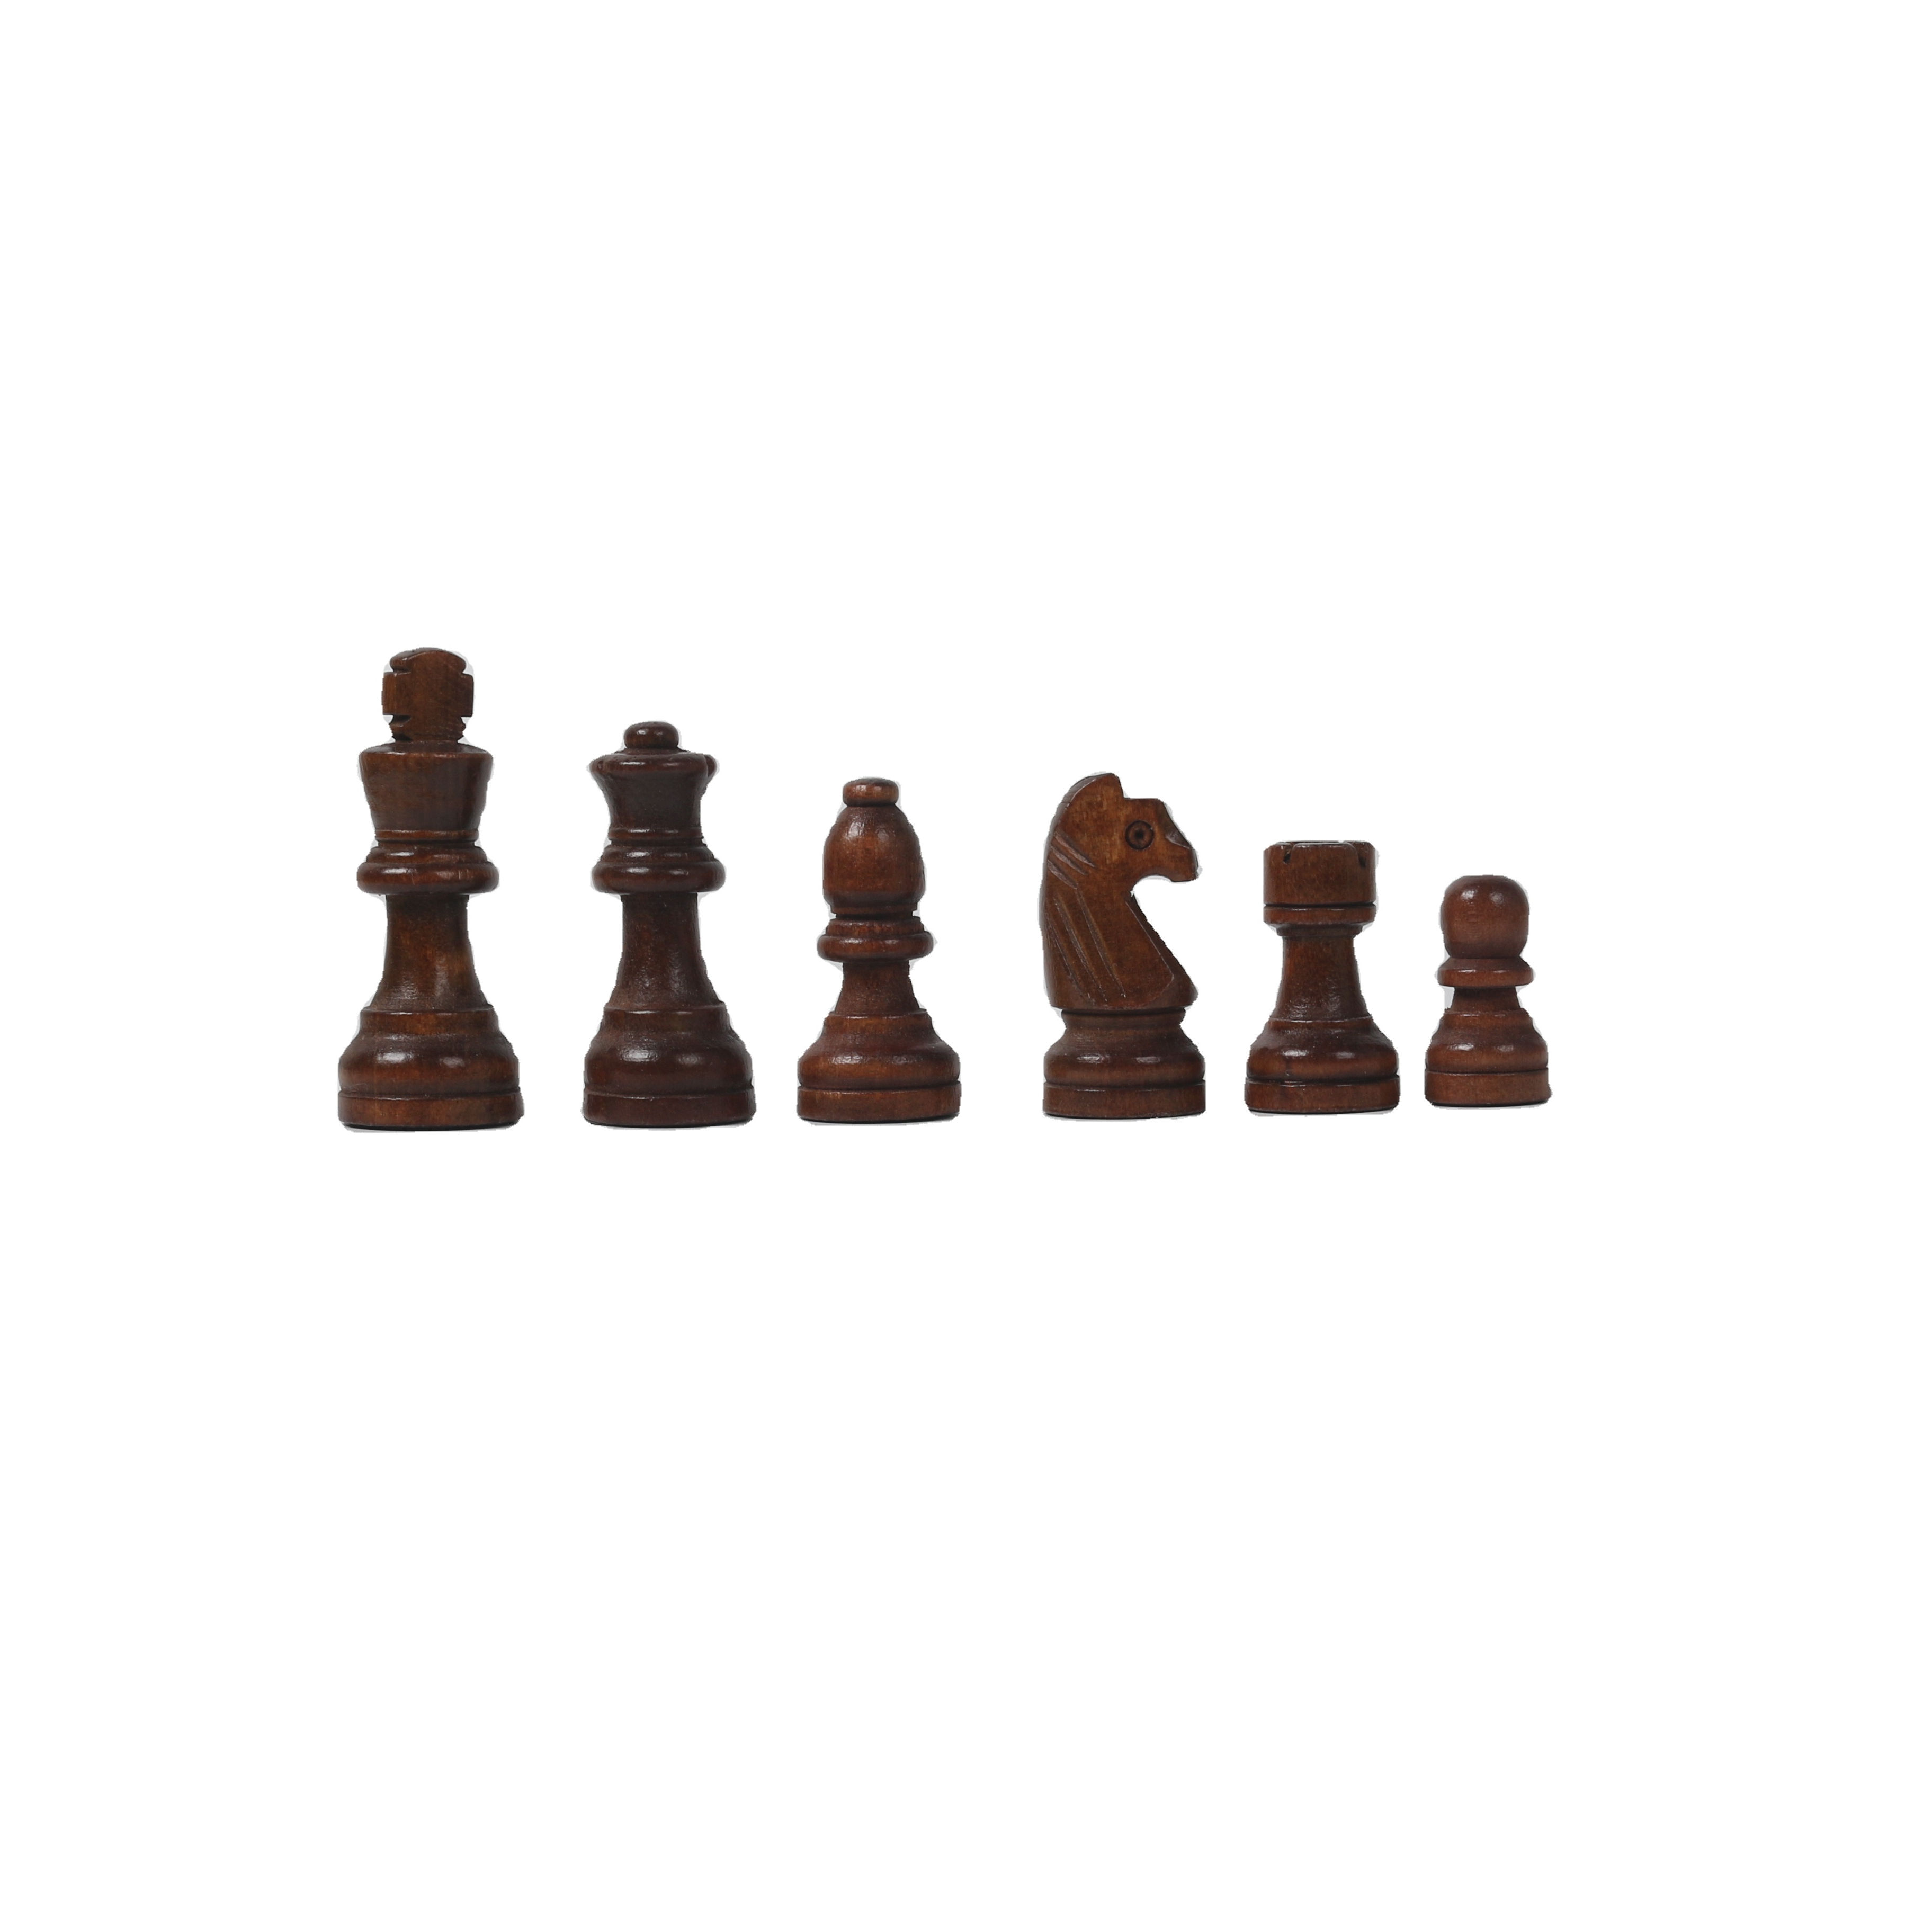 Handmade Professional Tournament Chess Set - Wooden 16 Inch Folding Board With Felt Base & Hand Carved Chess Pieces